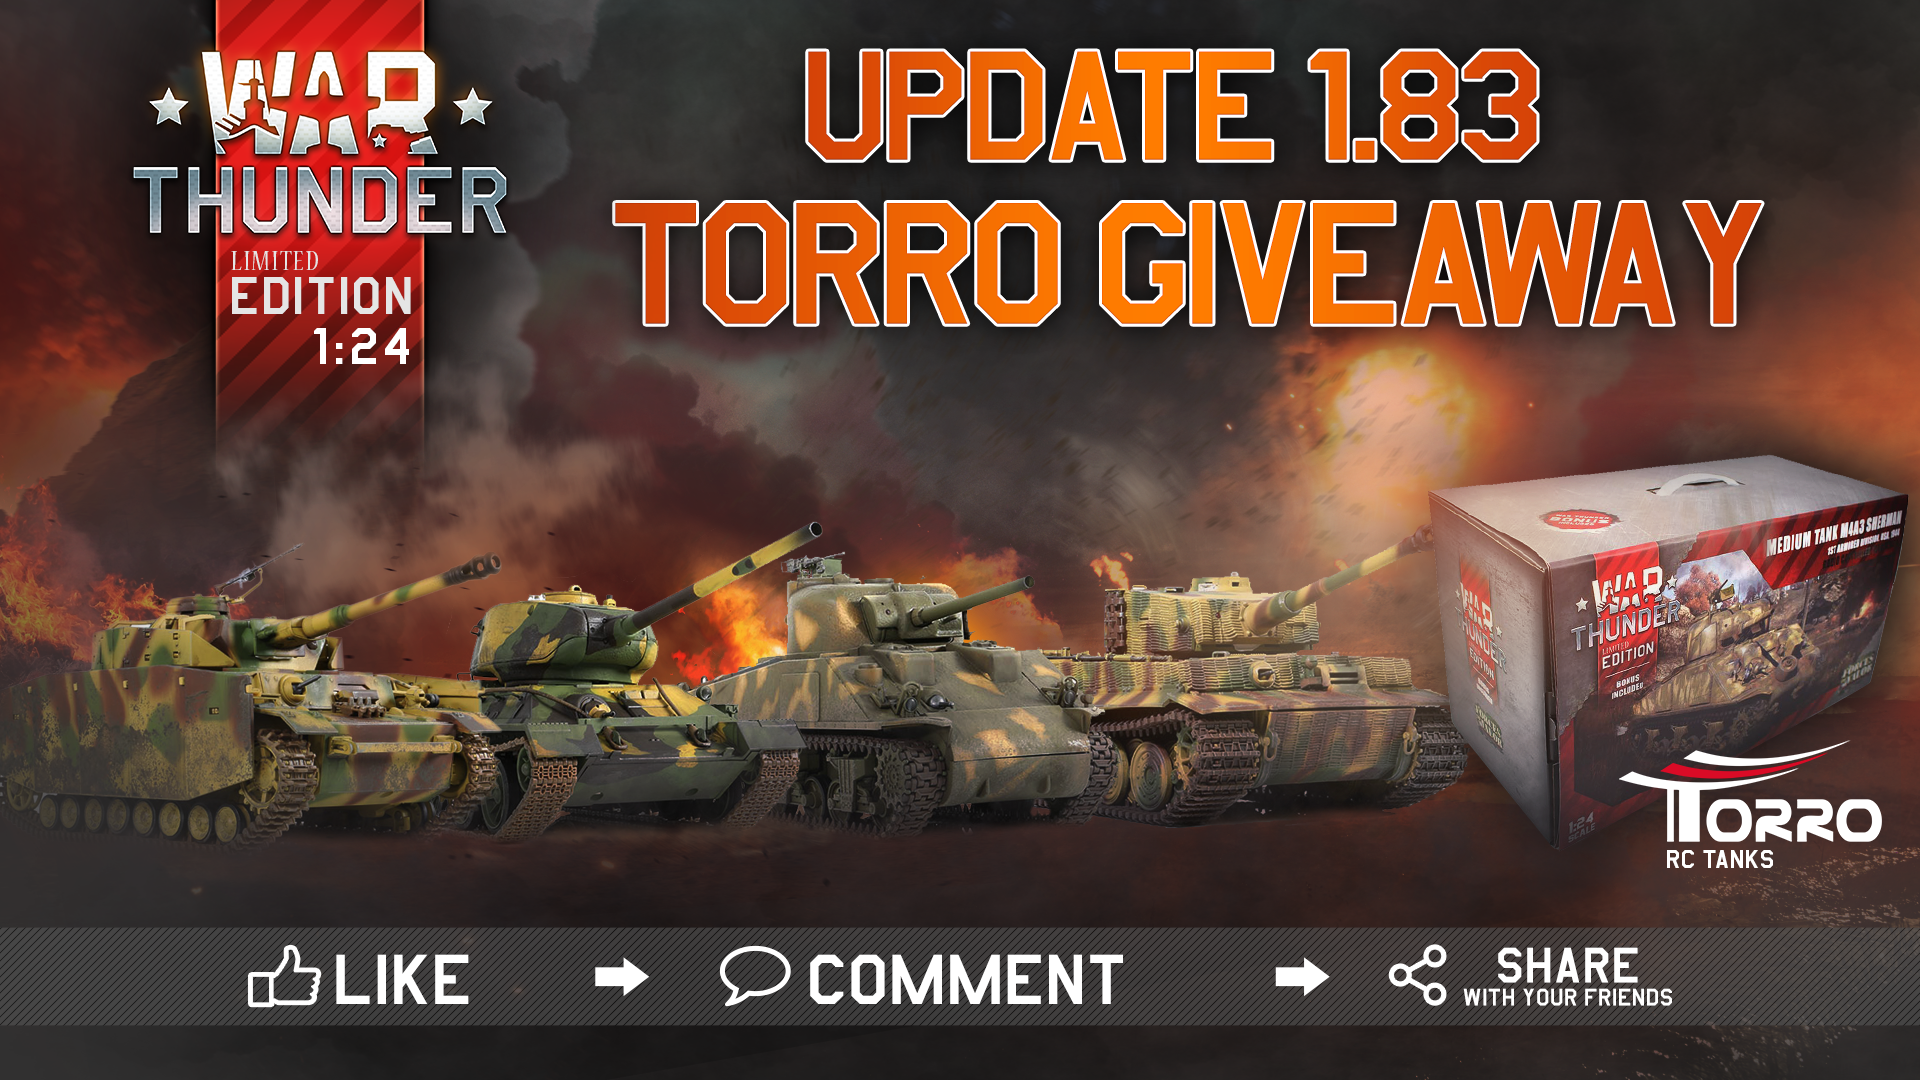 Giveaway] Update 1 83 giveaway: get War Thunder RC tanks - winners